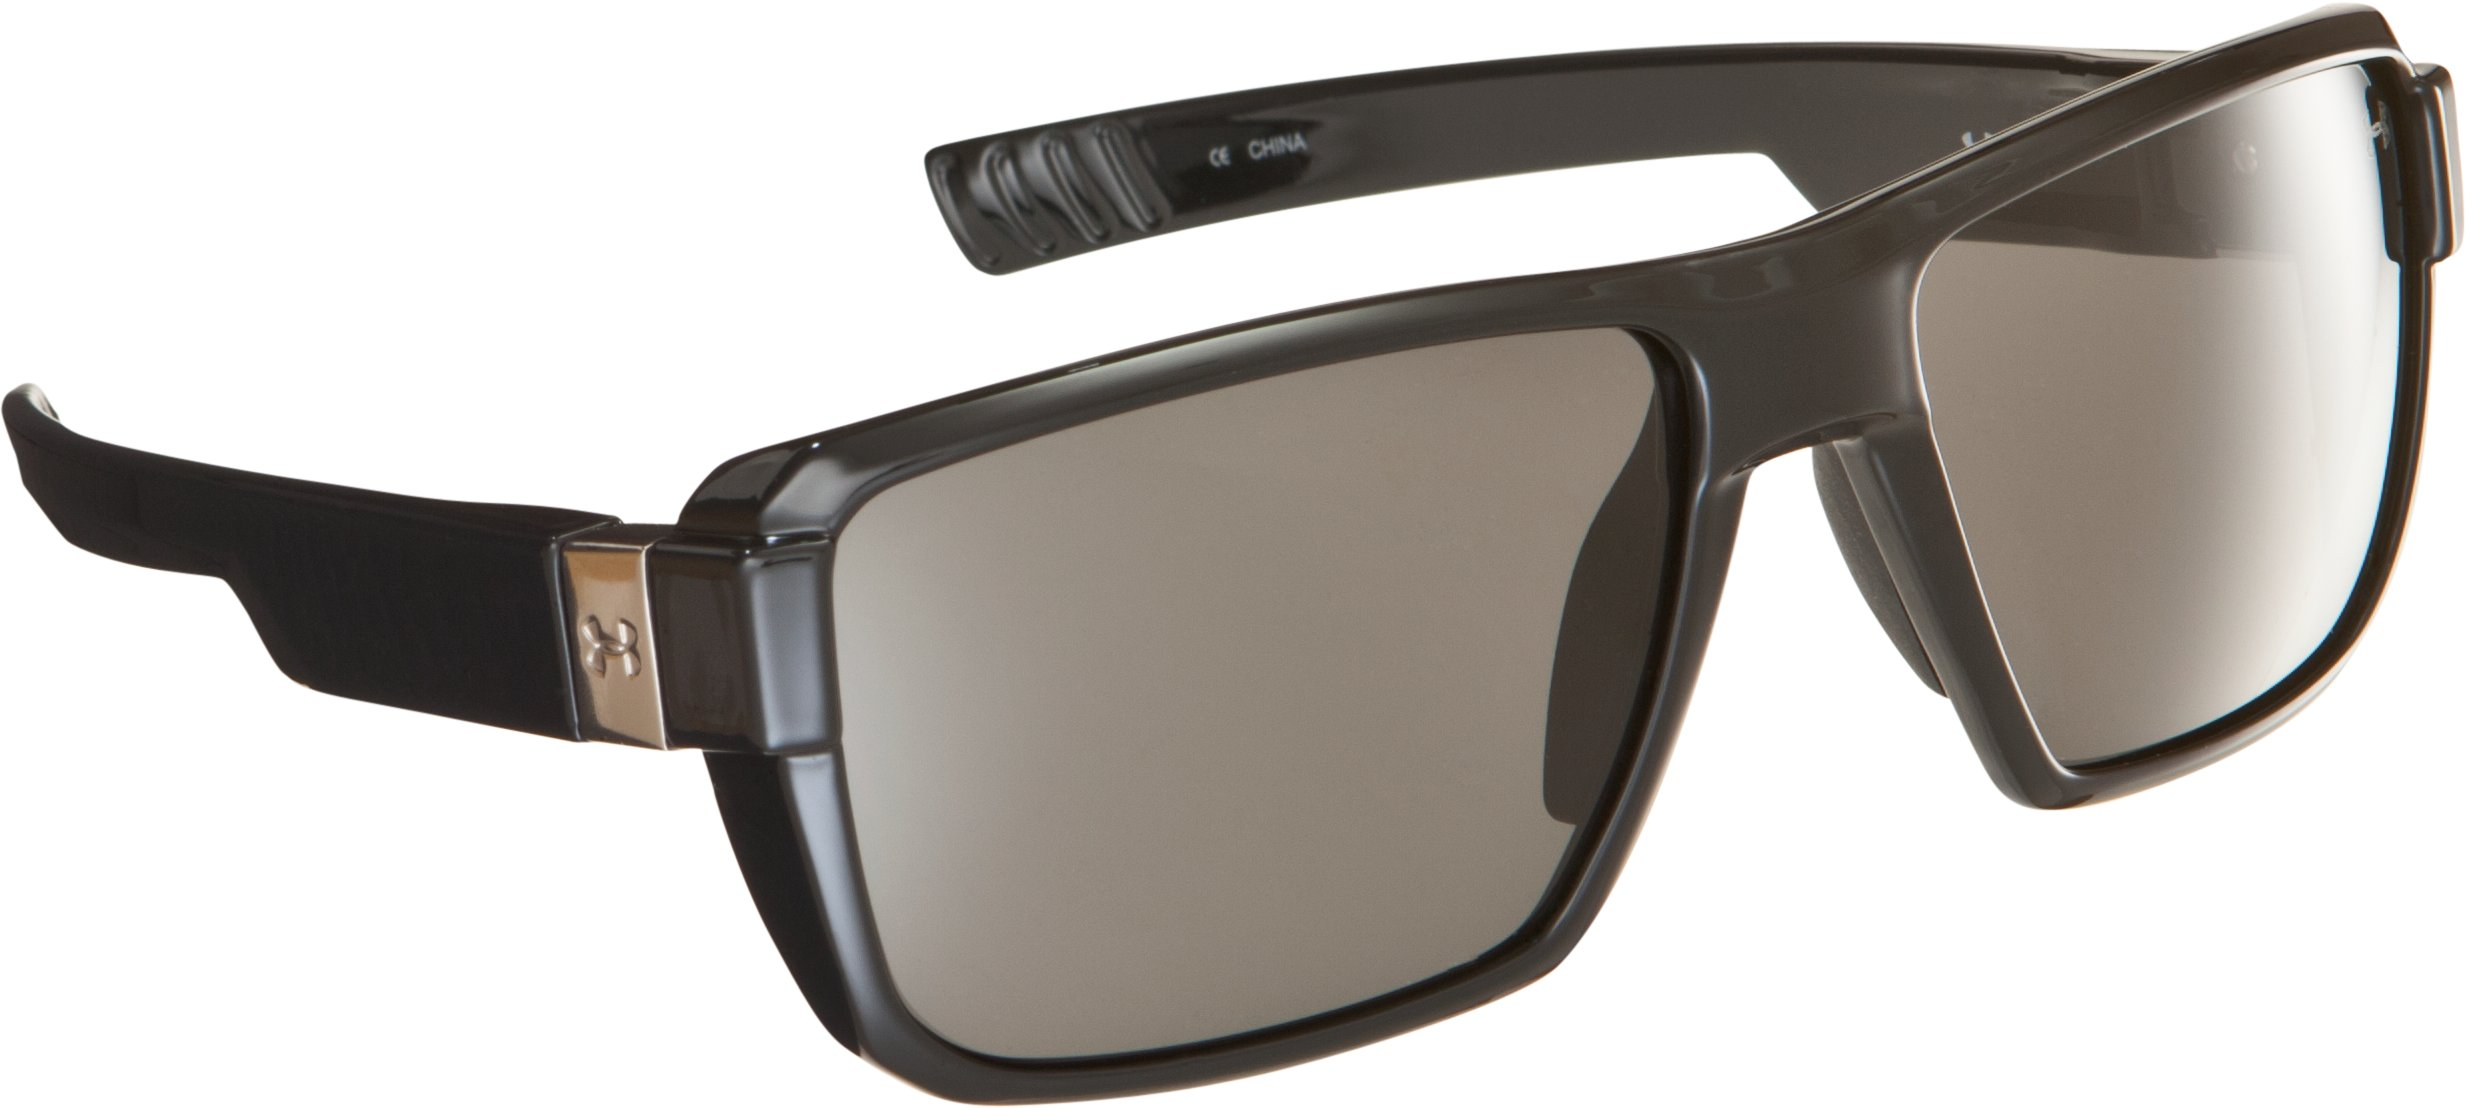 Women's UA Recon Sunglasses, Shiny Black